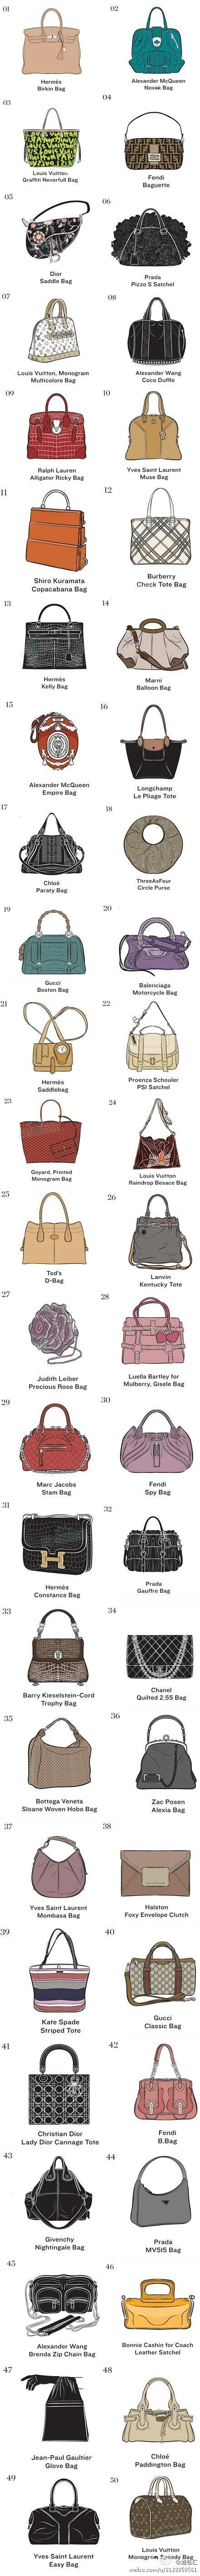 All KInds of Handbags